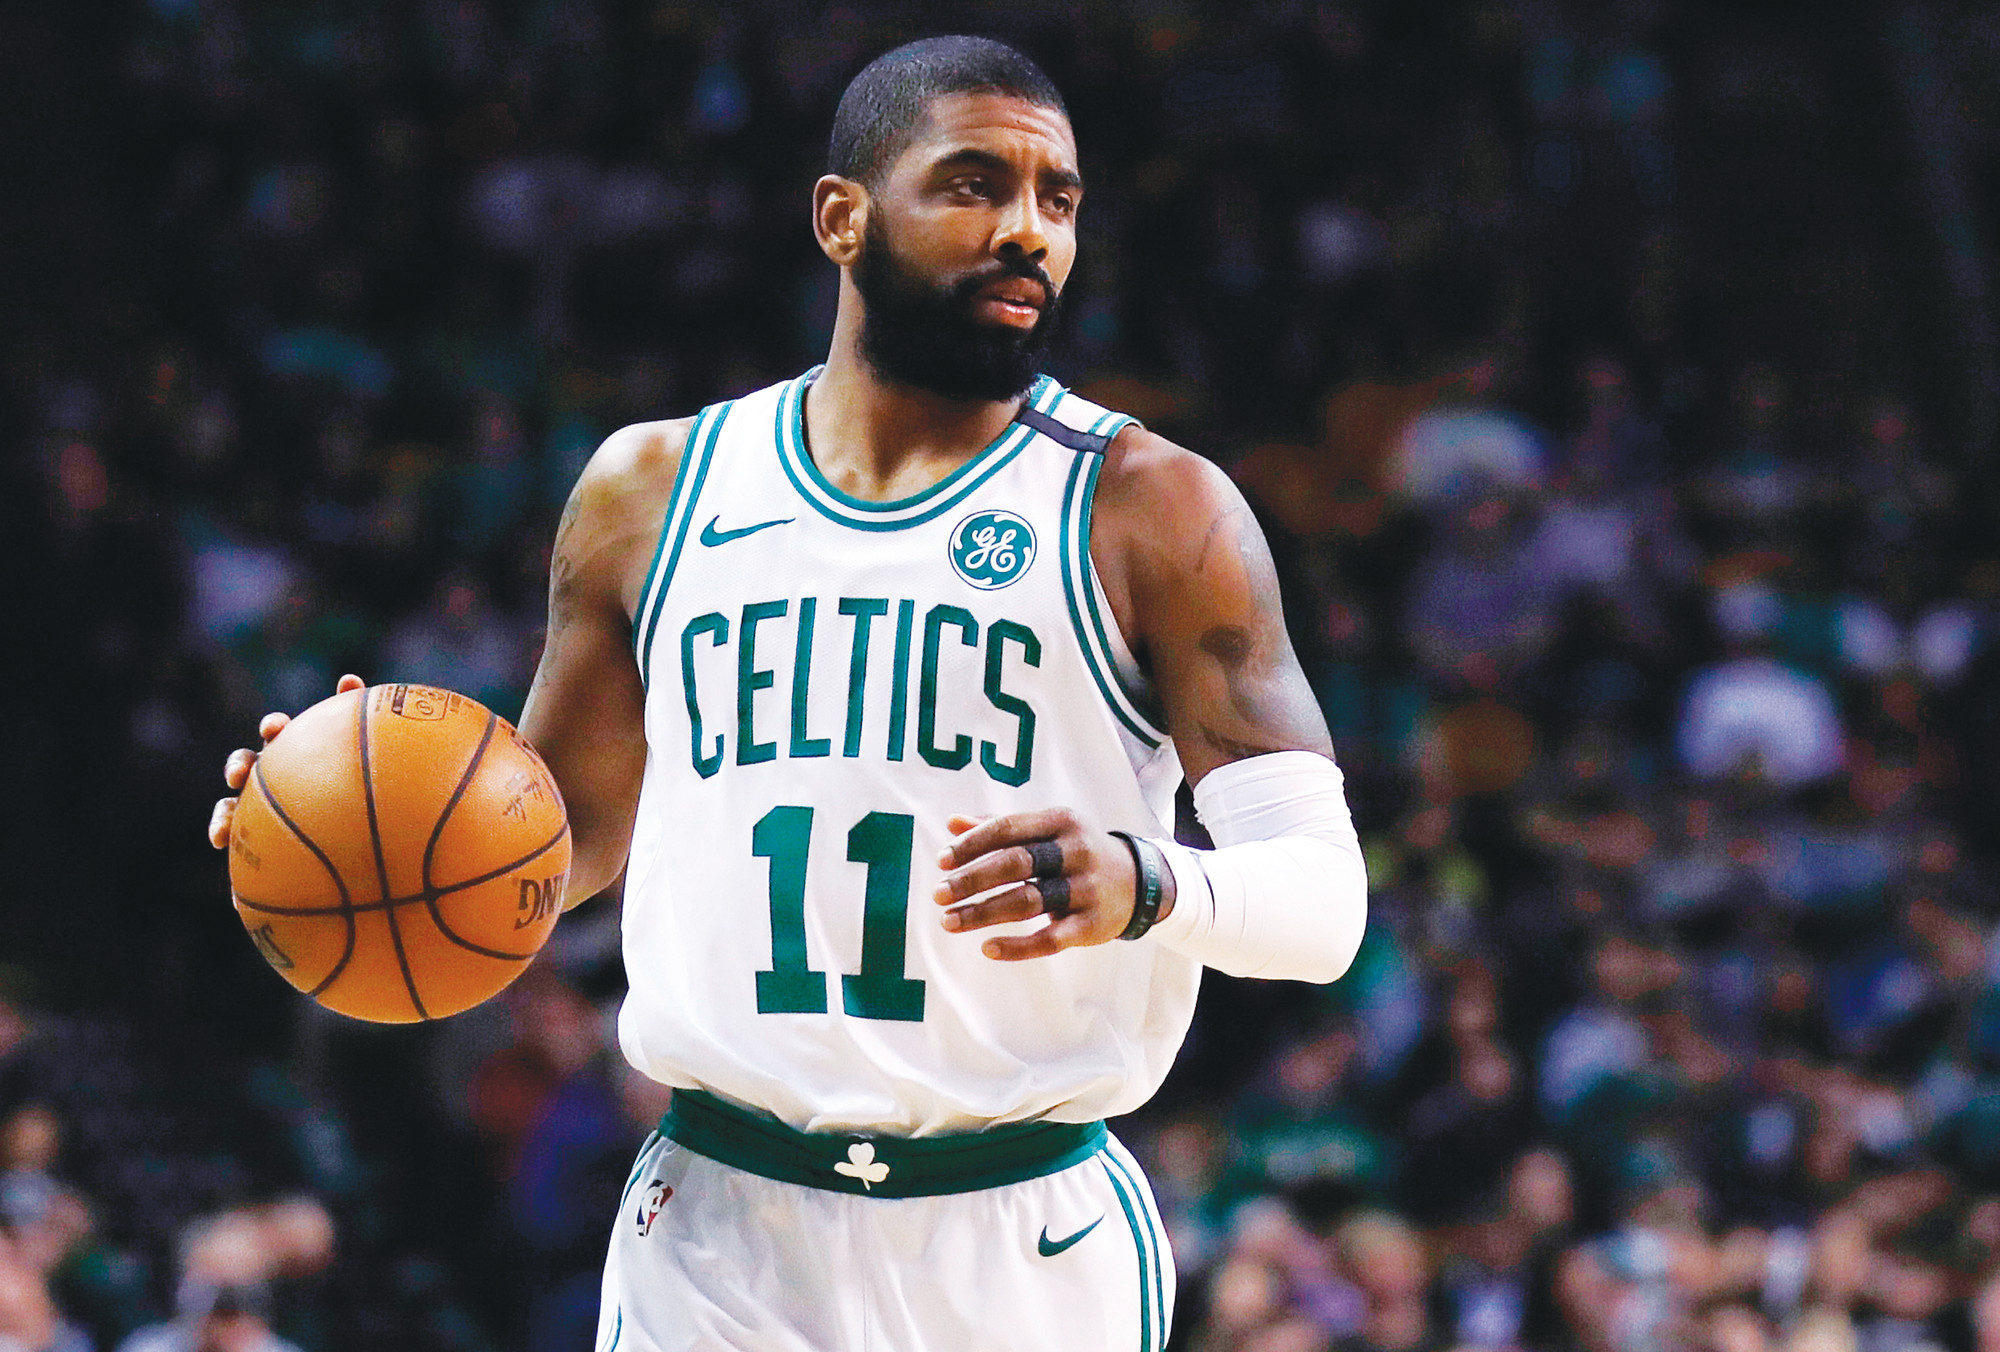 The Boston Celtics and Kyrie Irving